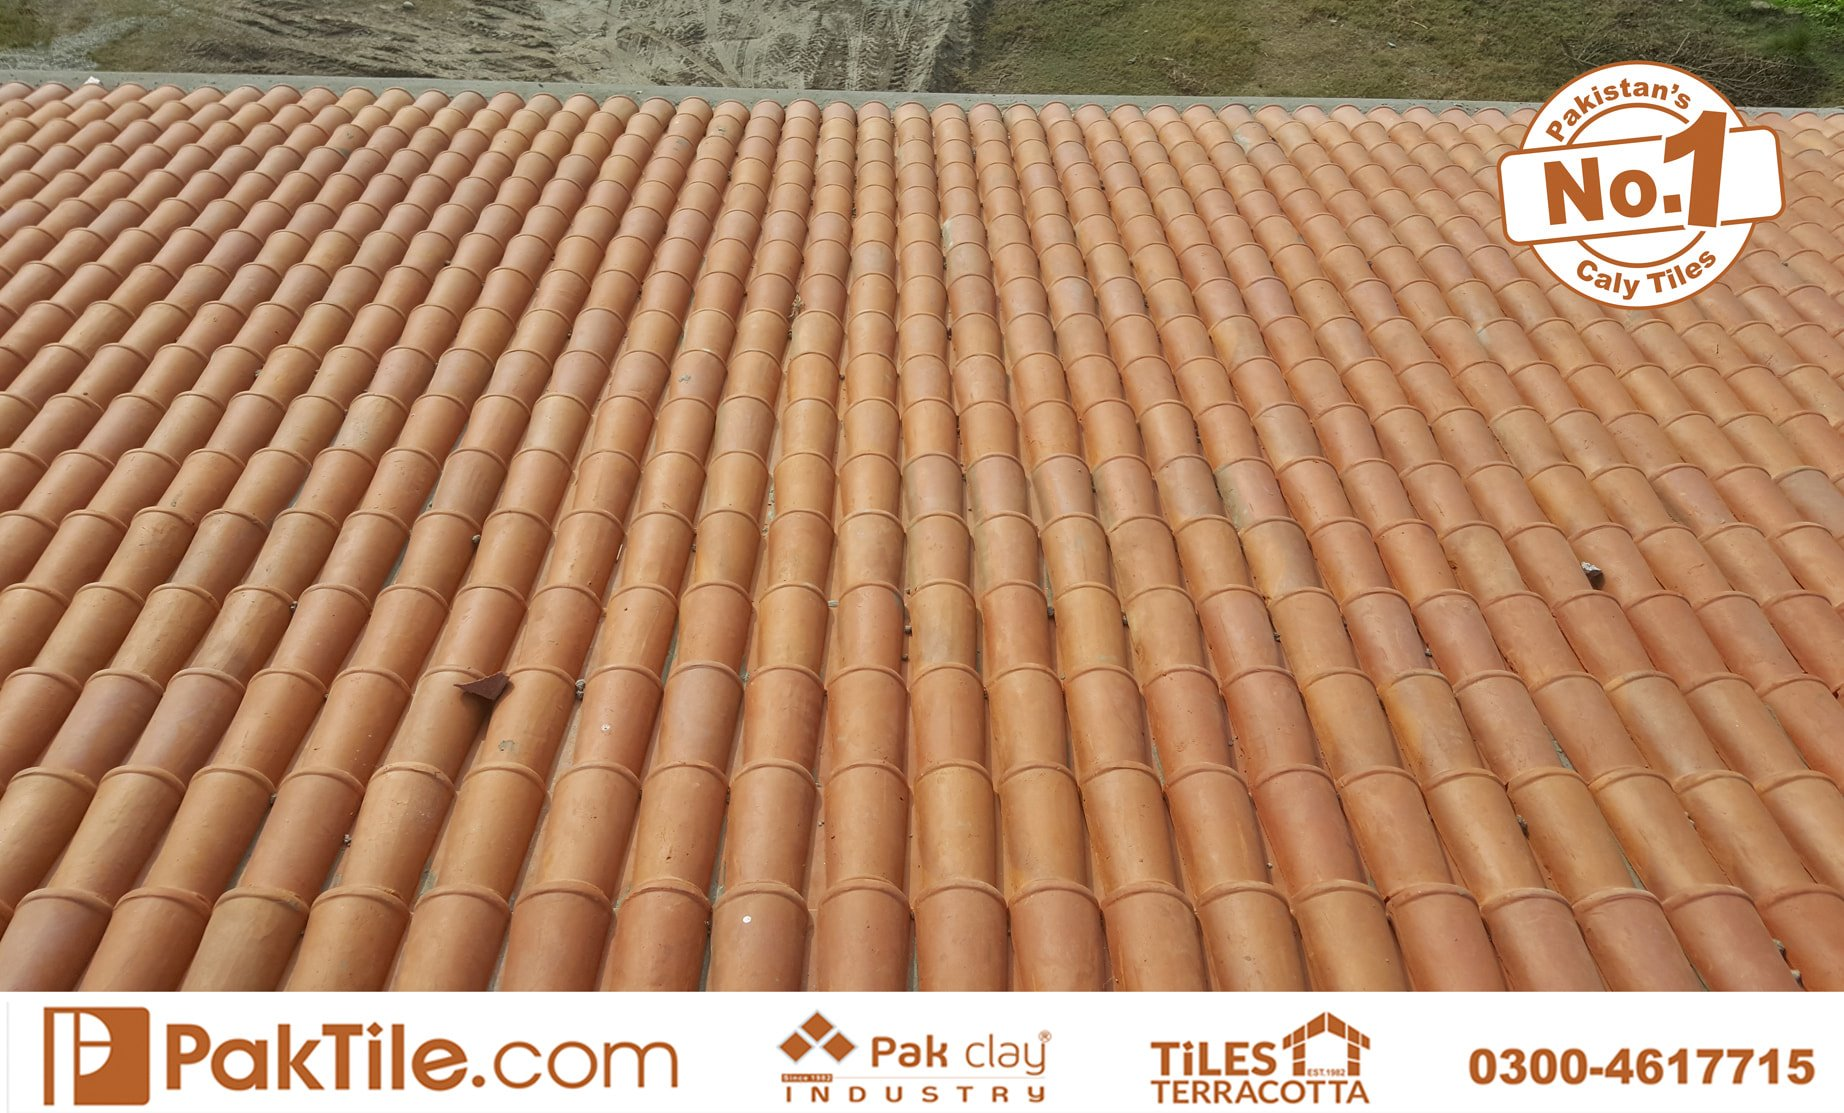 8 Pak Clay Slope Shed Roofing Materials Khaprail Tiles in Pakistan Images.